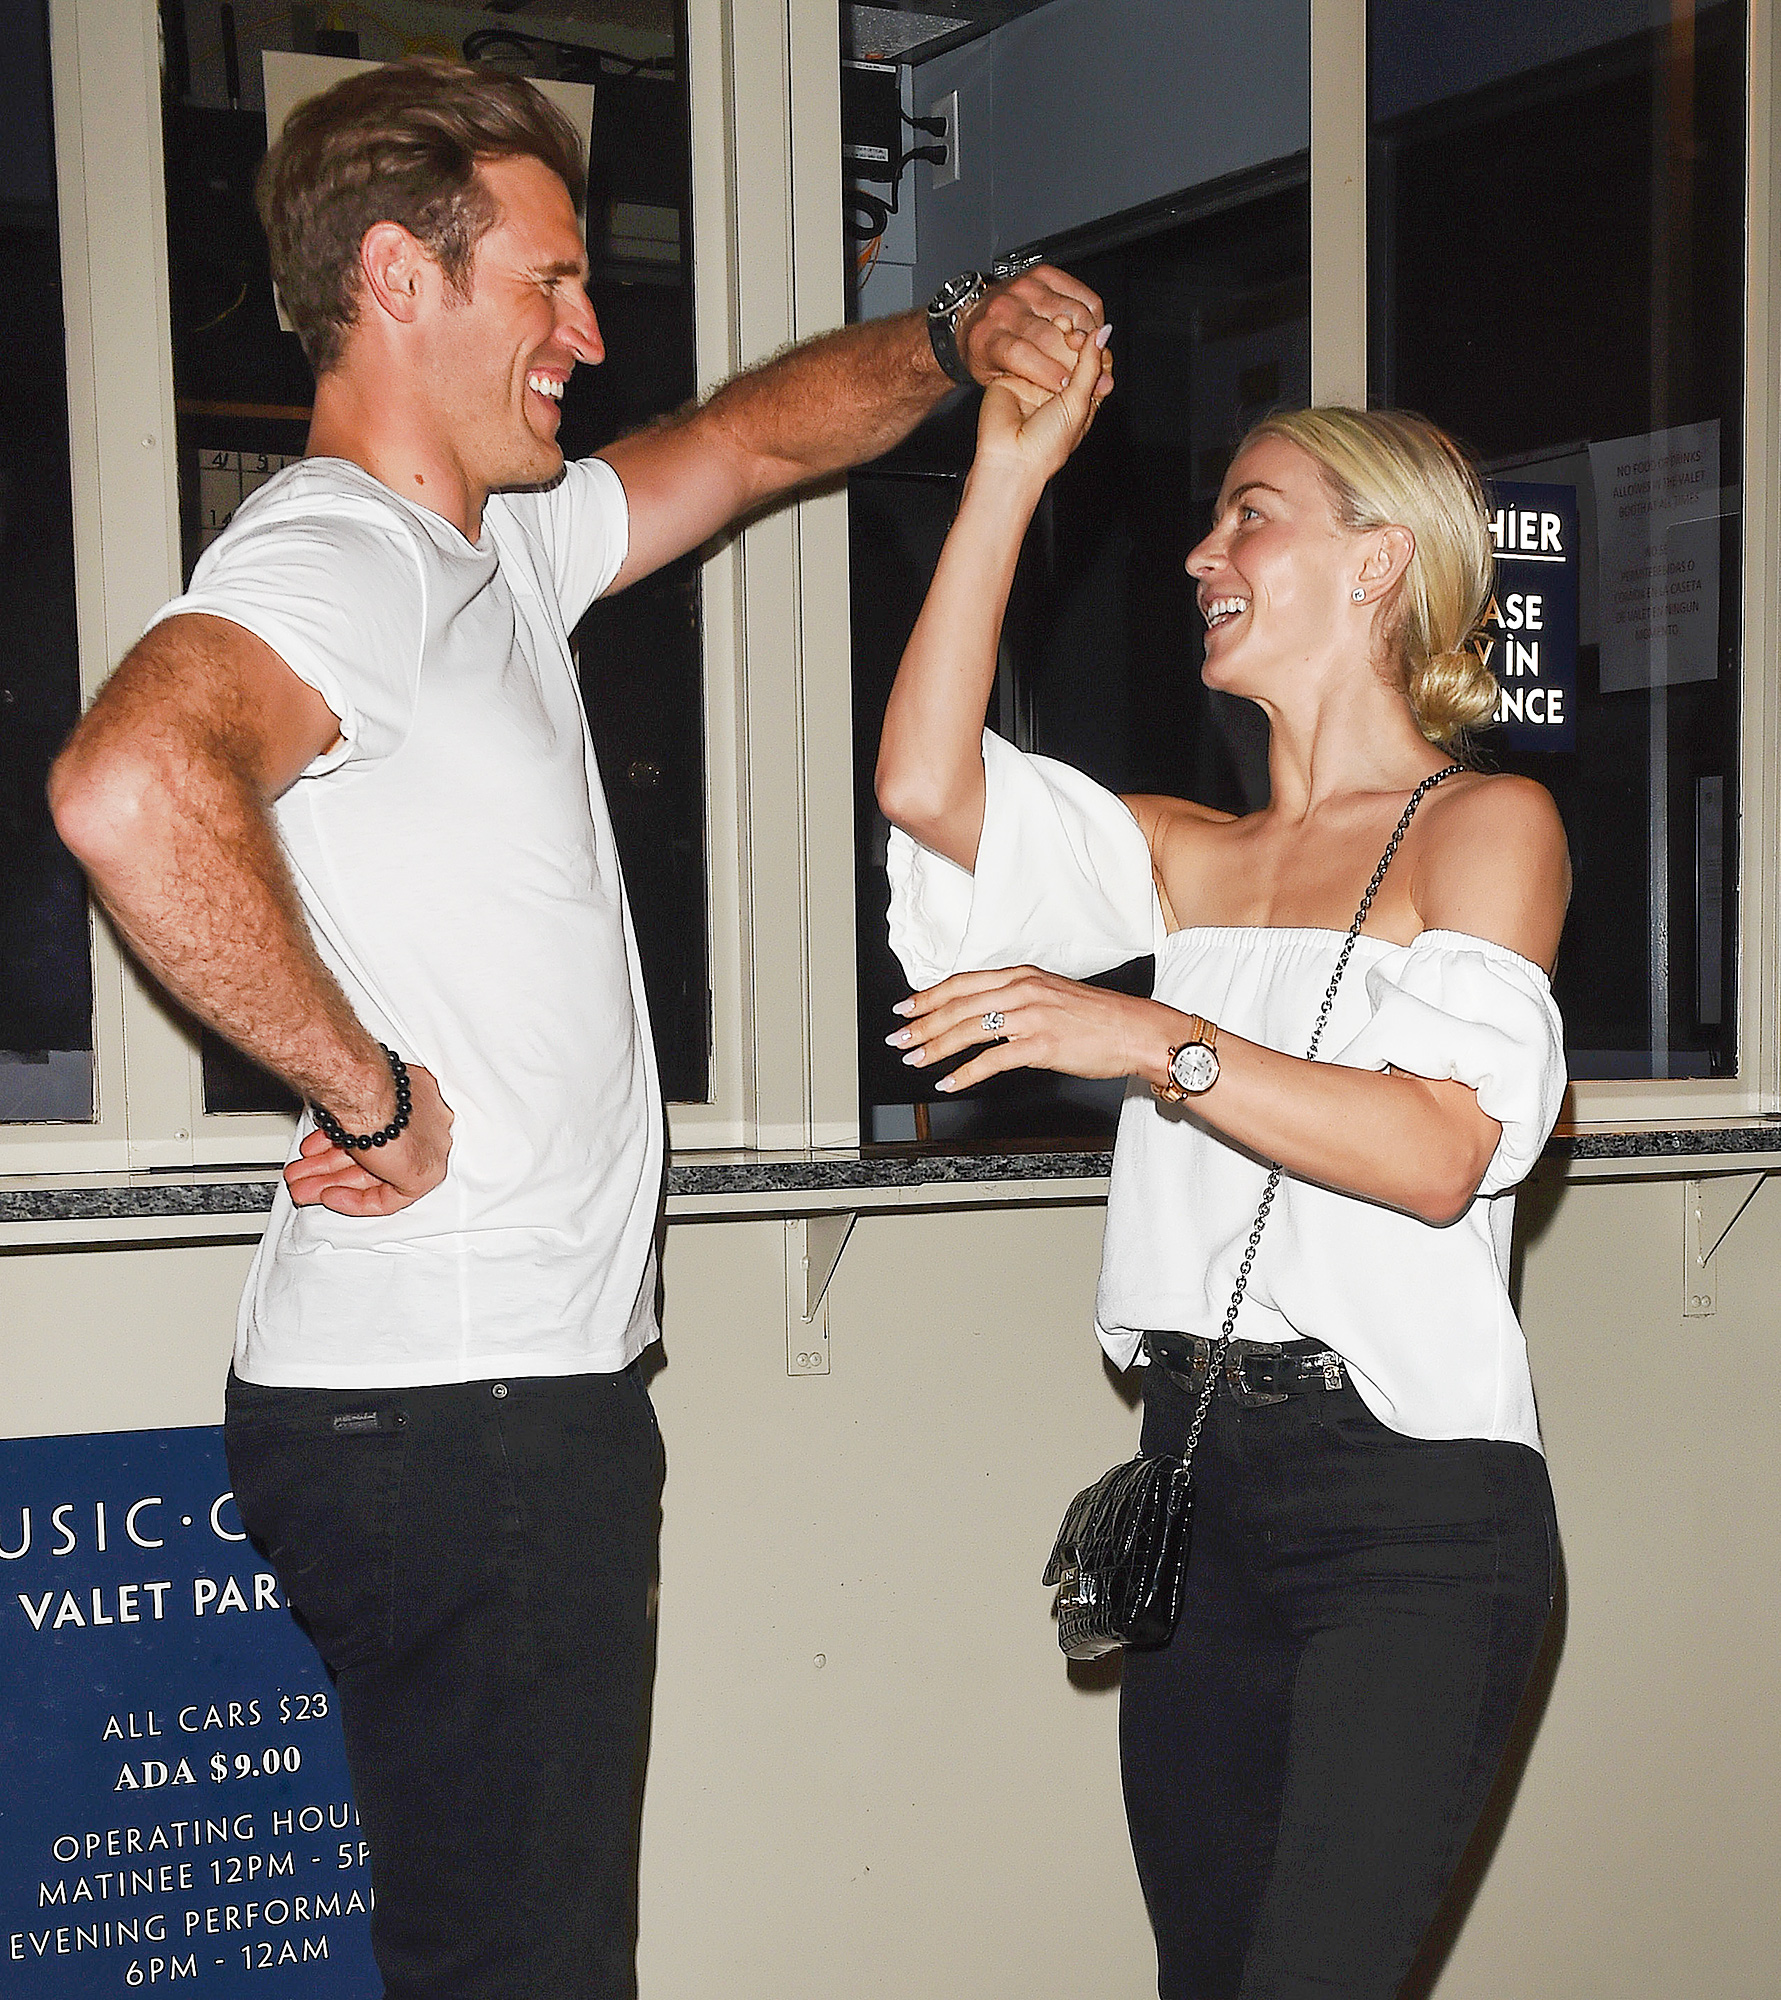 EXCLUSIVE: Julianne Hough and Brooks Laich enjoy a Date Night watching Mark Ballas Jersey Boy Performance at the Ahmanson Theatre in Los Angeles